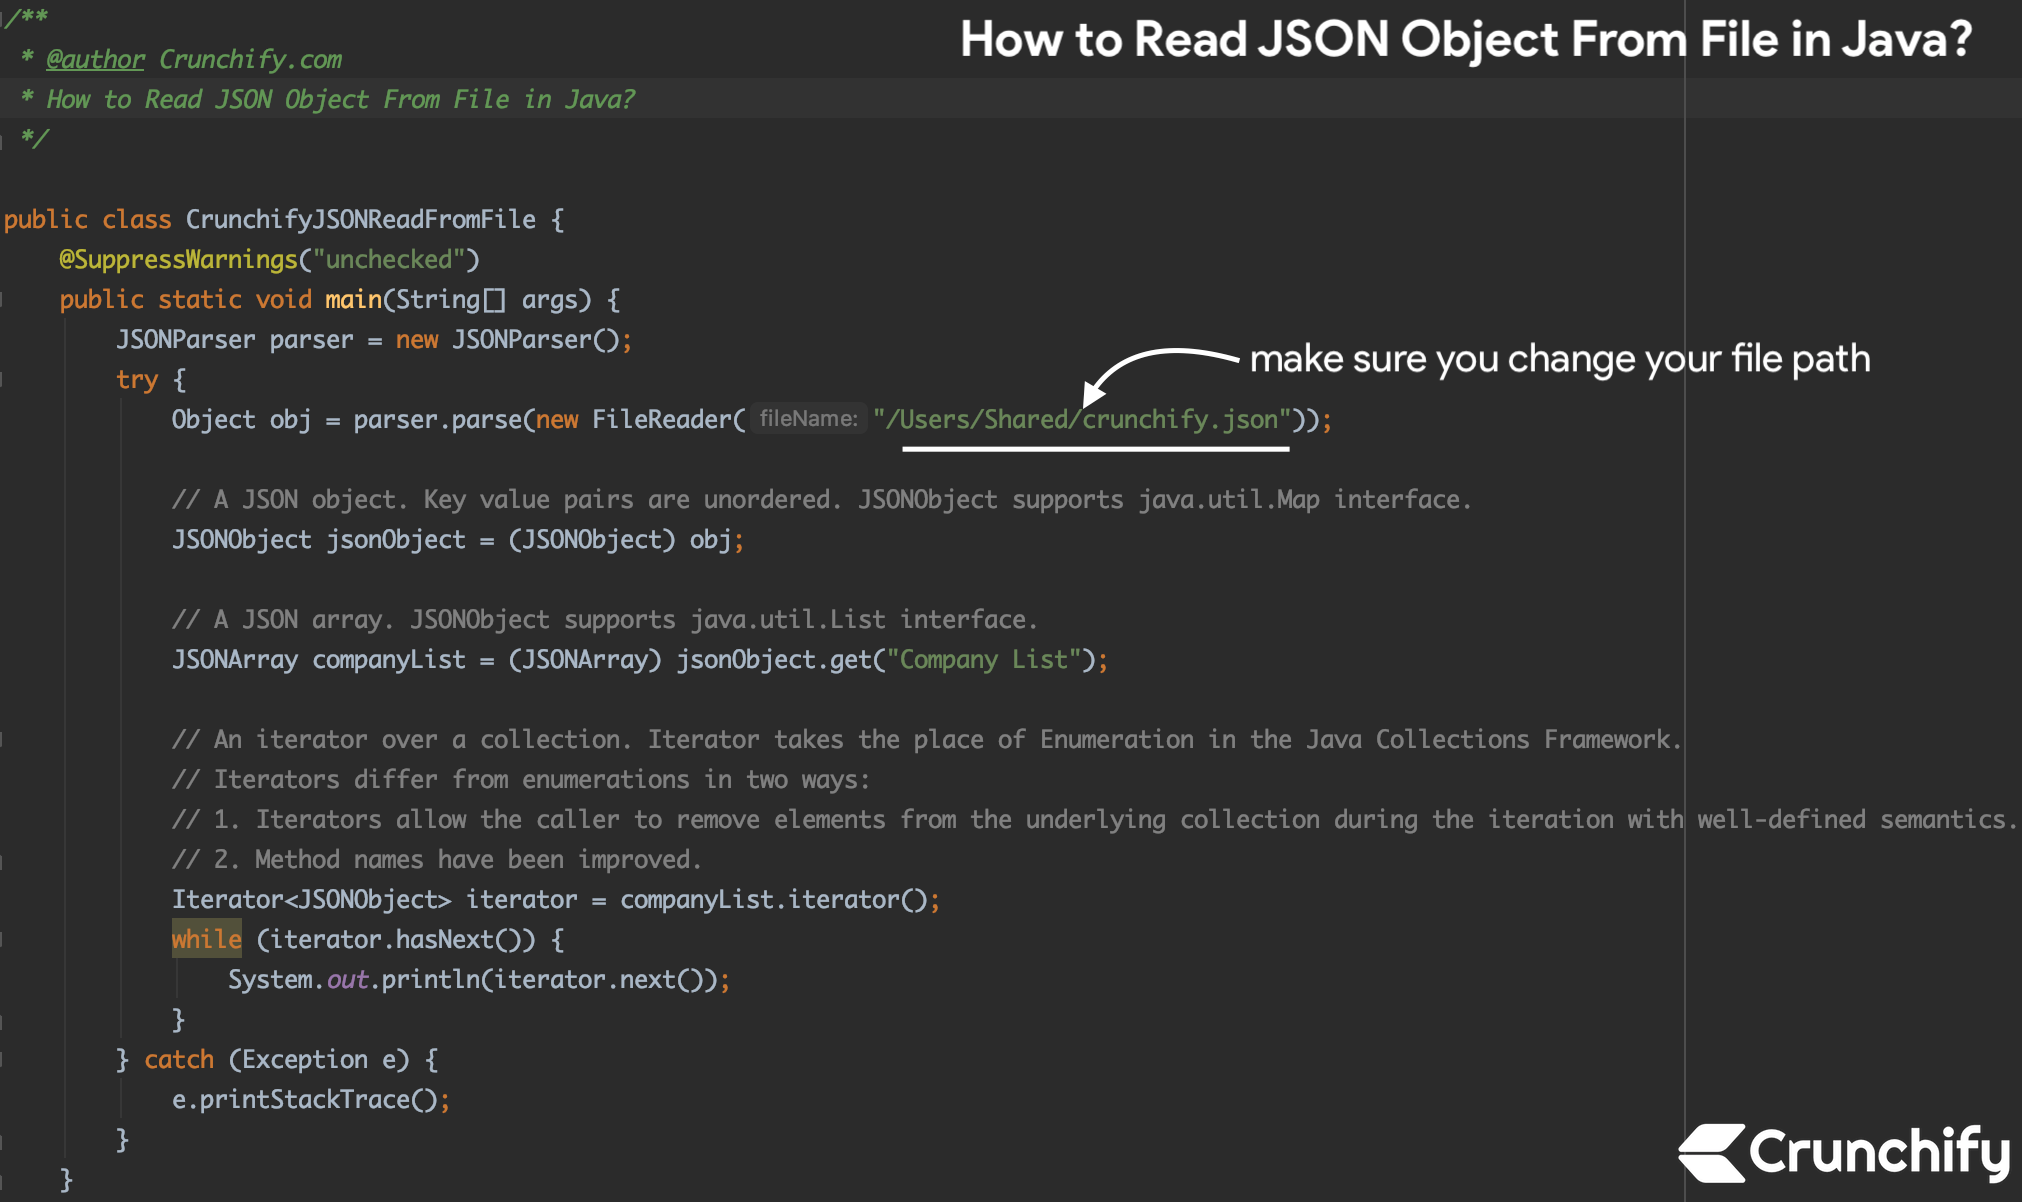 How to Read JSON Object From File in Java? - Crunchify Tutorial